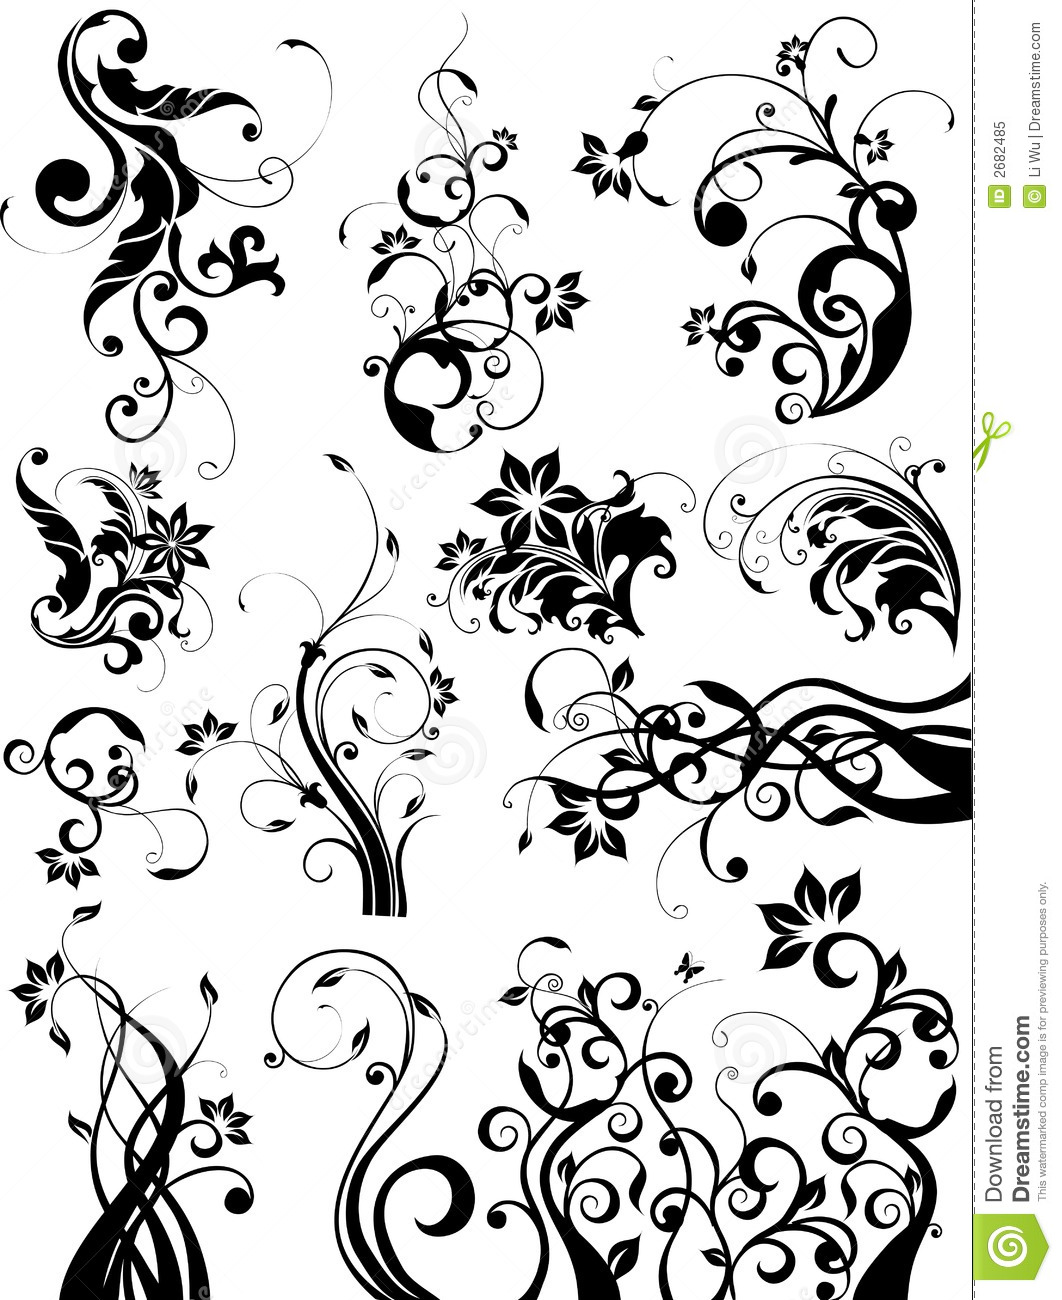 In Design Elements : Design elements stock vector illustration of